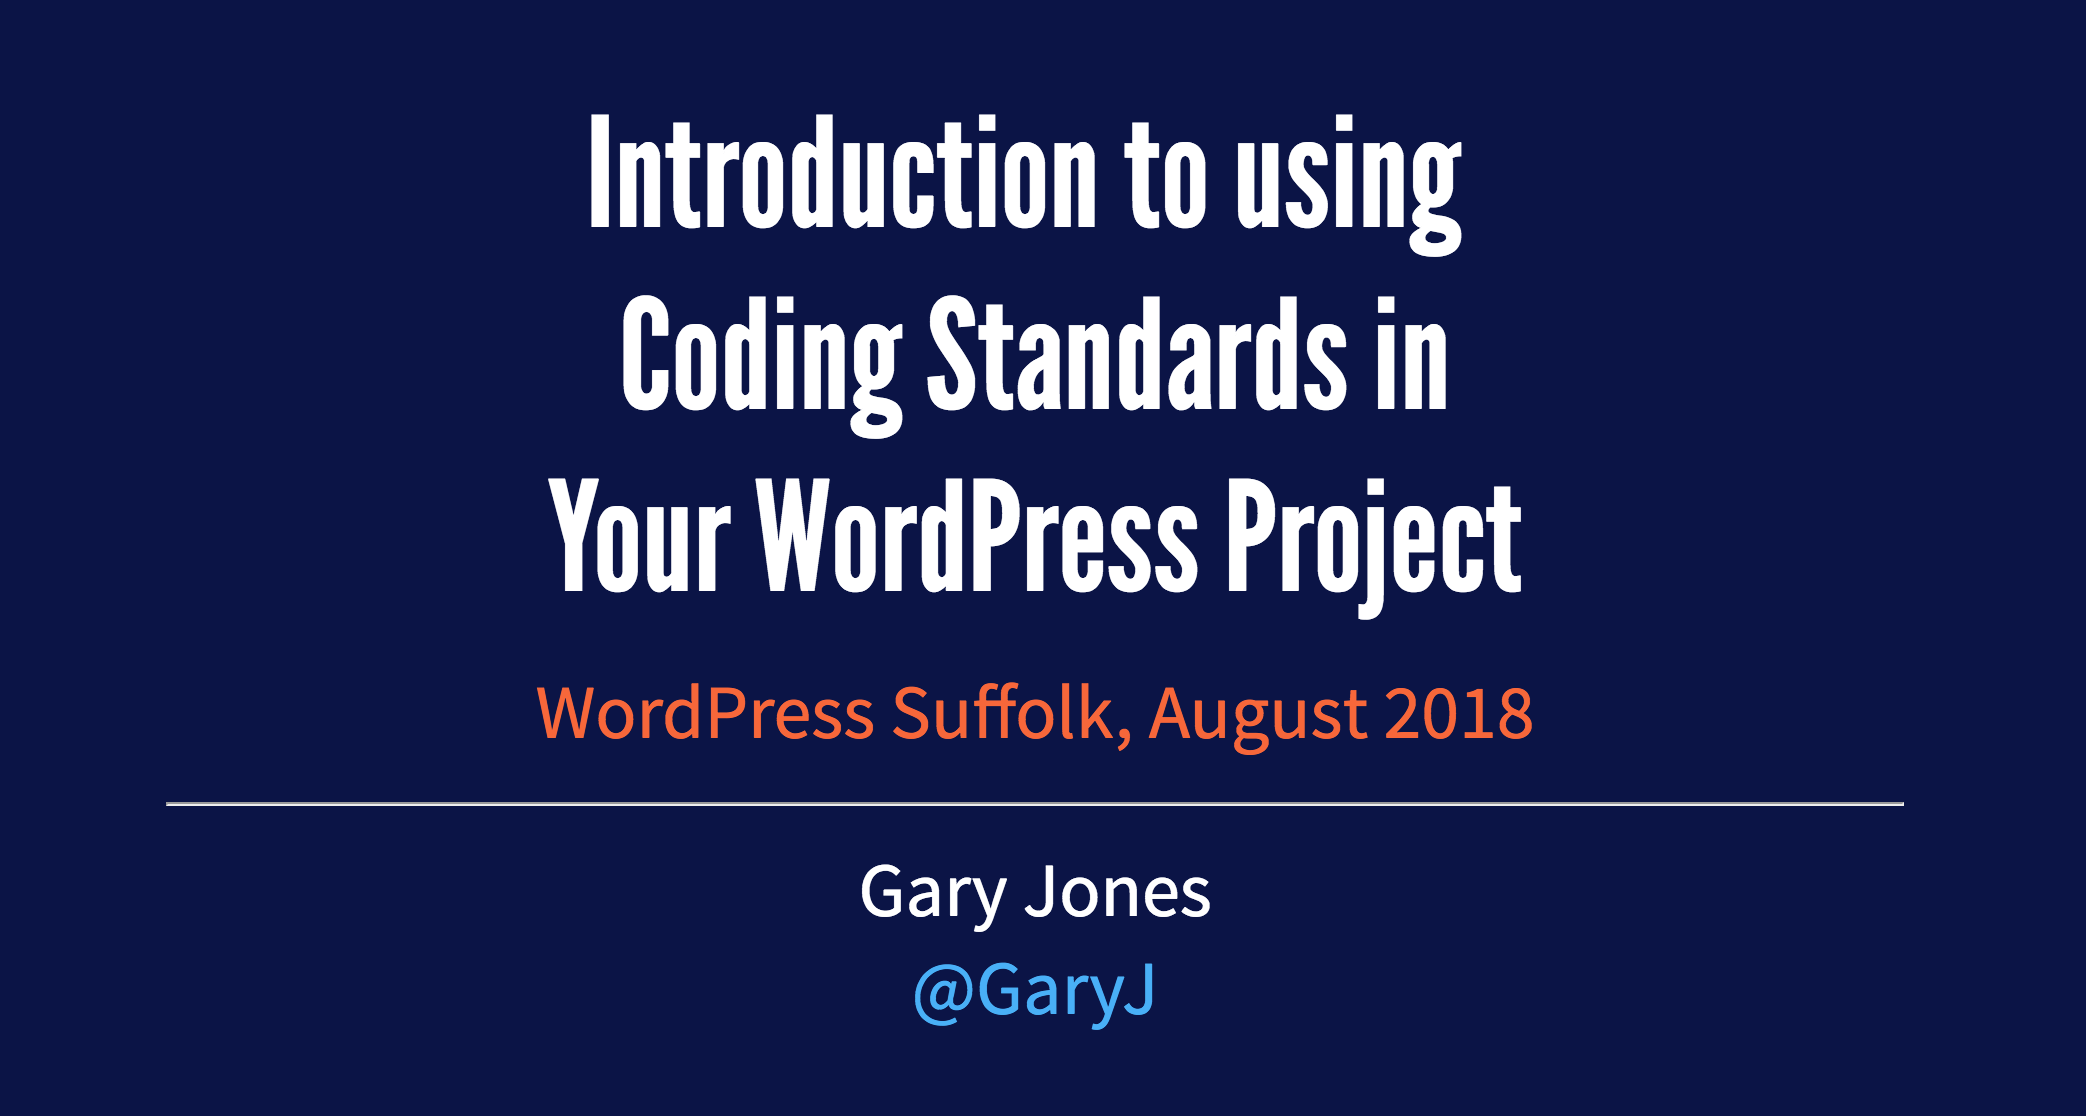 Screenshot of my title slide, containing the presentation title, the event (WordPress Suffolk) and date (August 2018), and my name and Twitter link